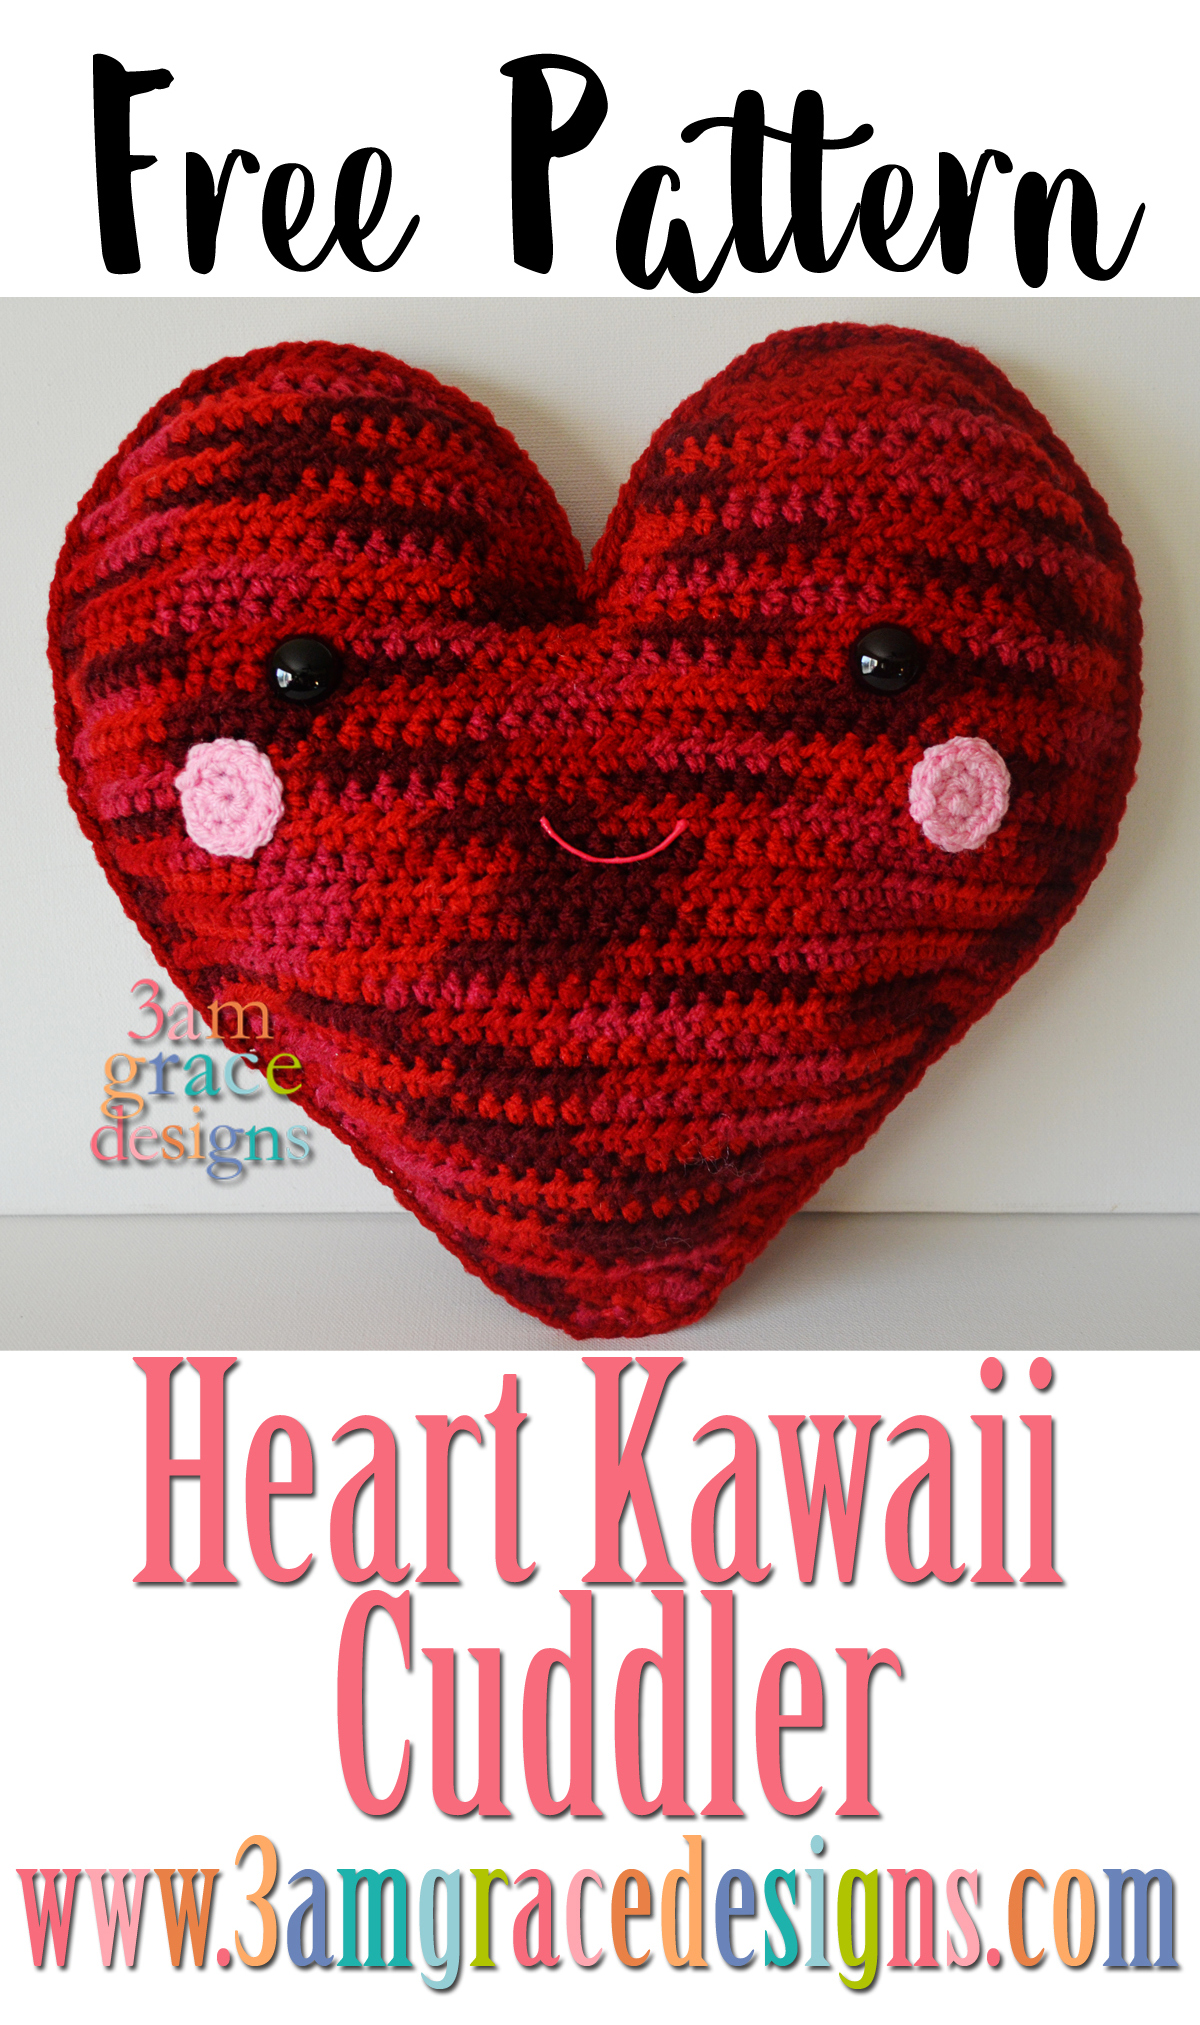 Heart Kawaii Cuddler™ | 3amgracedesigns